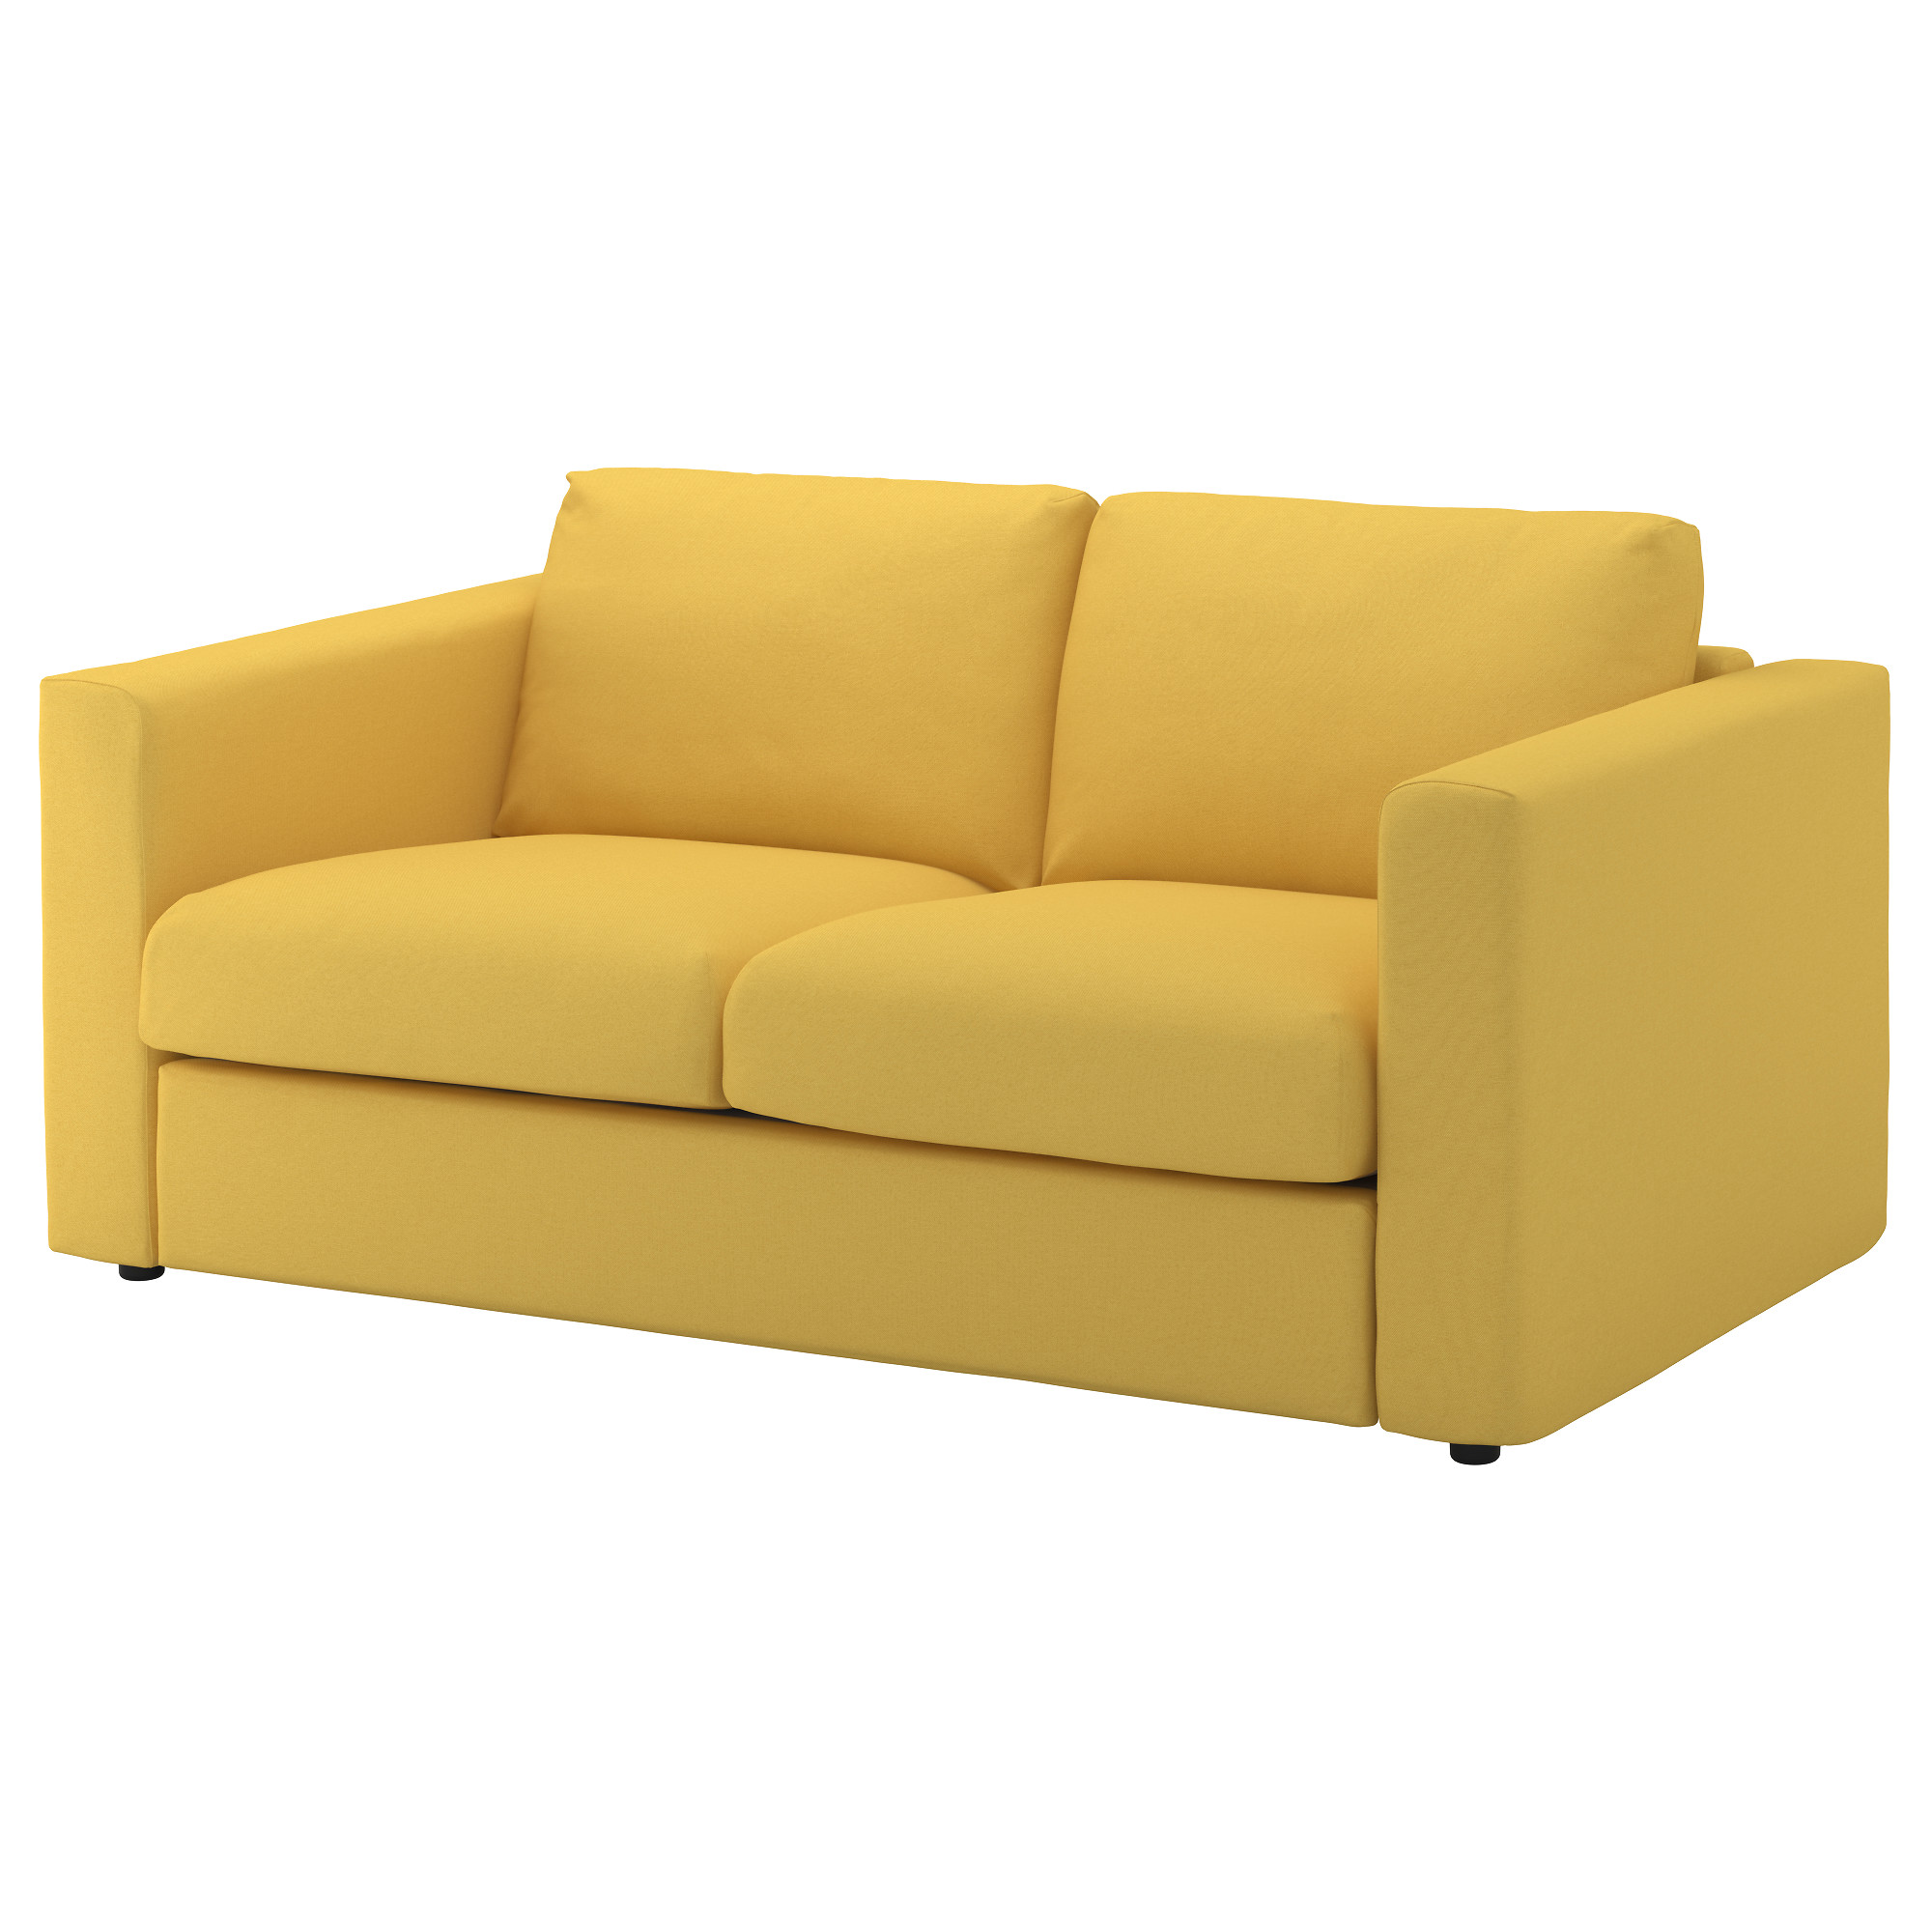 sofa couch covers and design couches slipcover furniture pet decoration ultimate protectors ideas ikea loveseat for slipcovers with wonderful